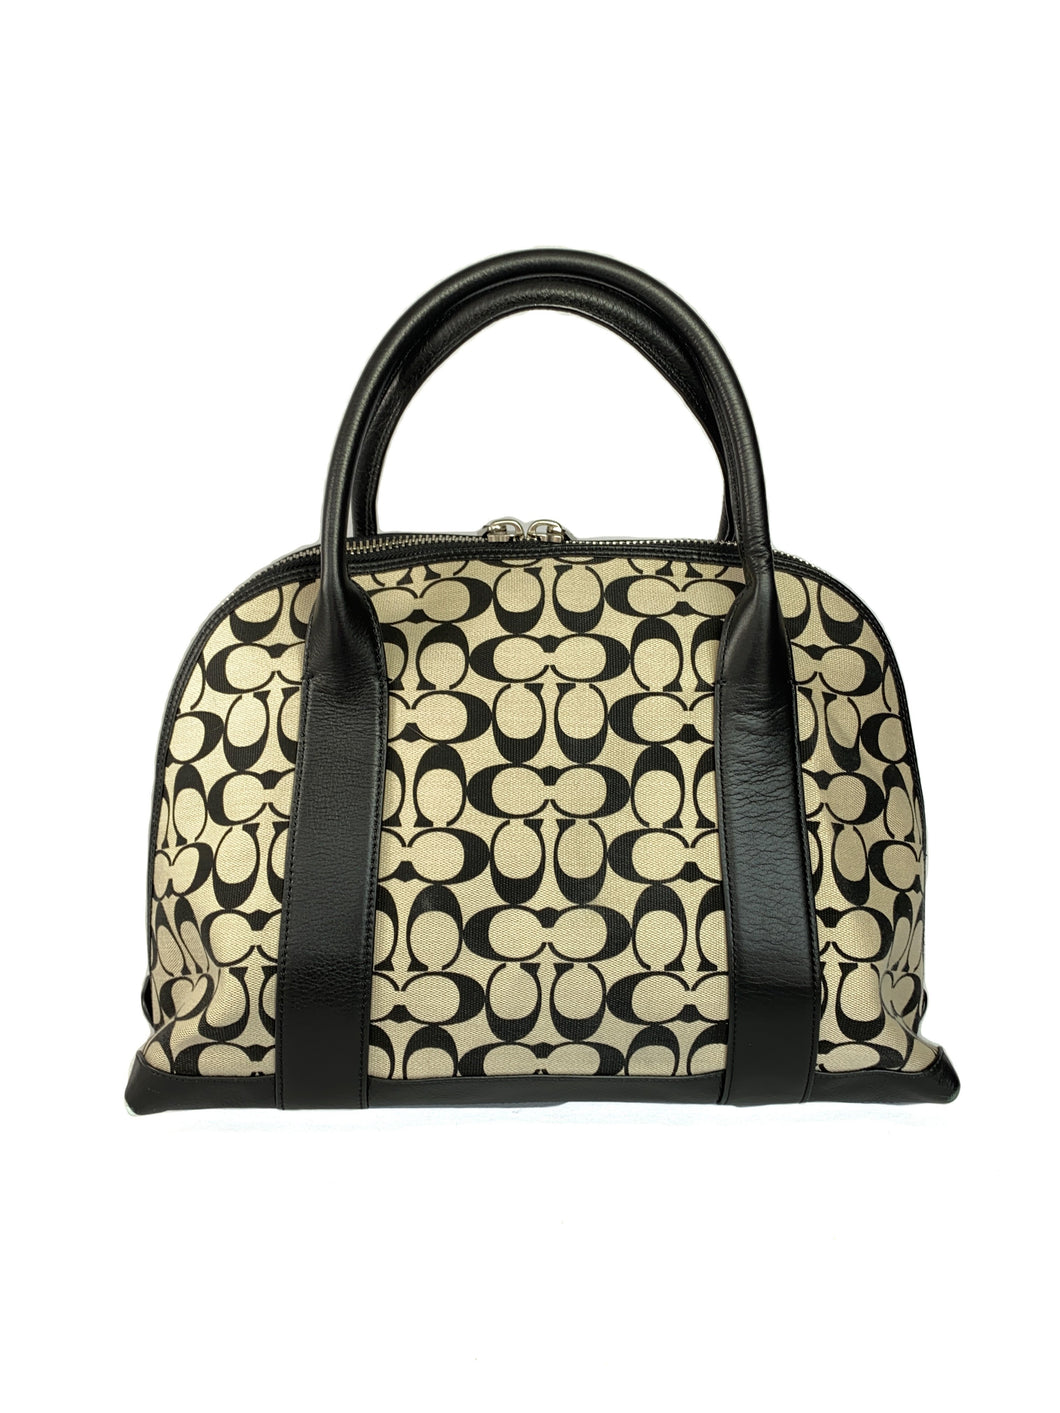 Coach khaki and black Bleecker Preston domed satchel 30160 - My Girlfriend's Wardrobe LLC